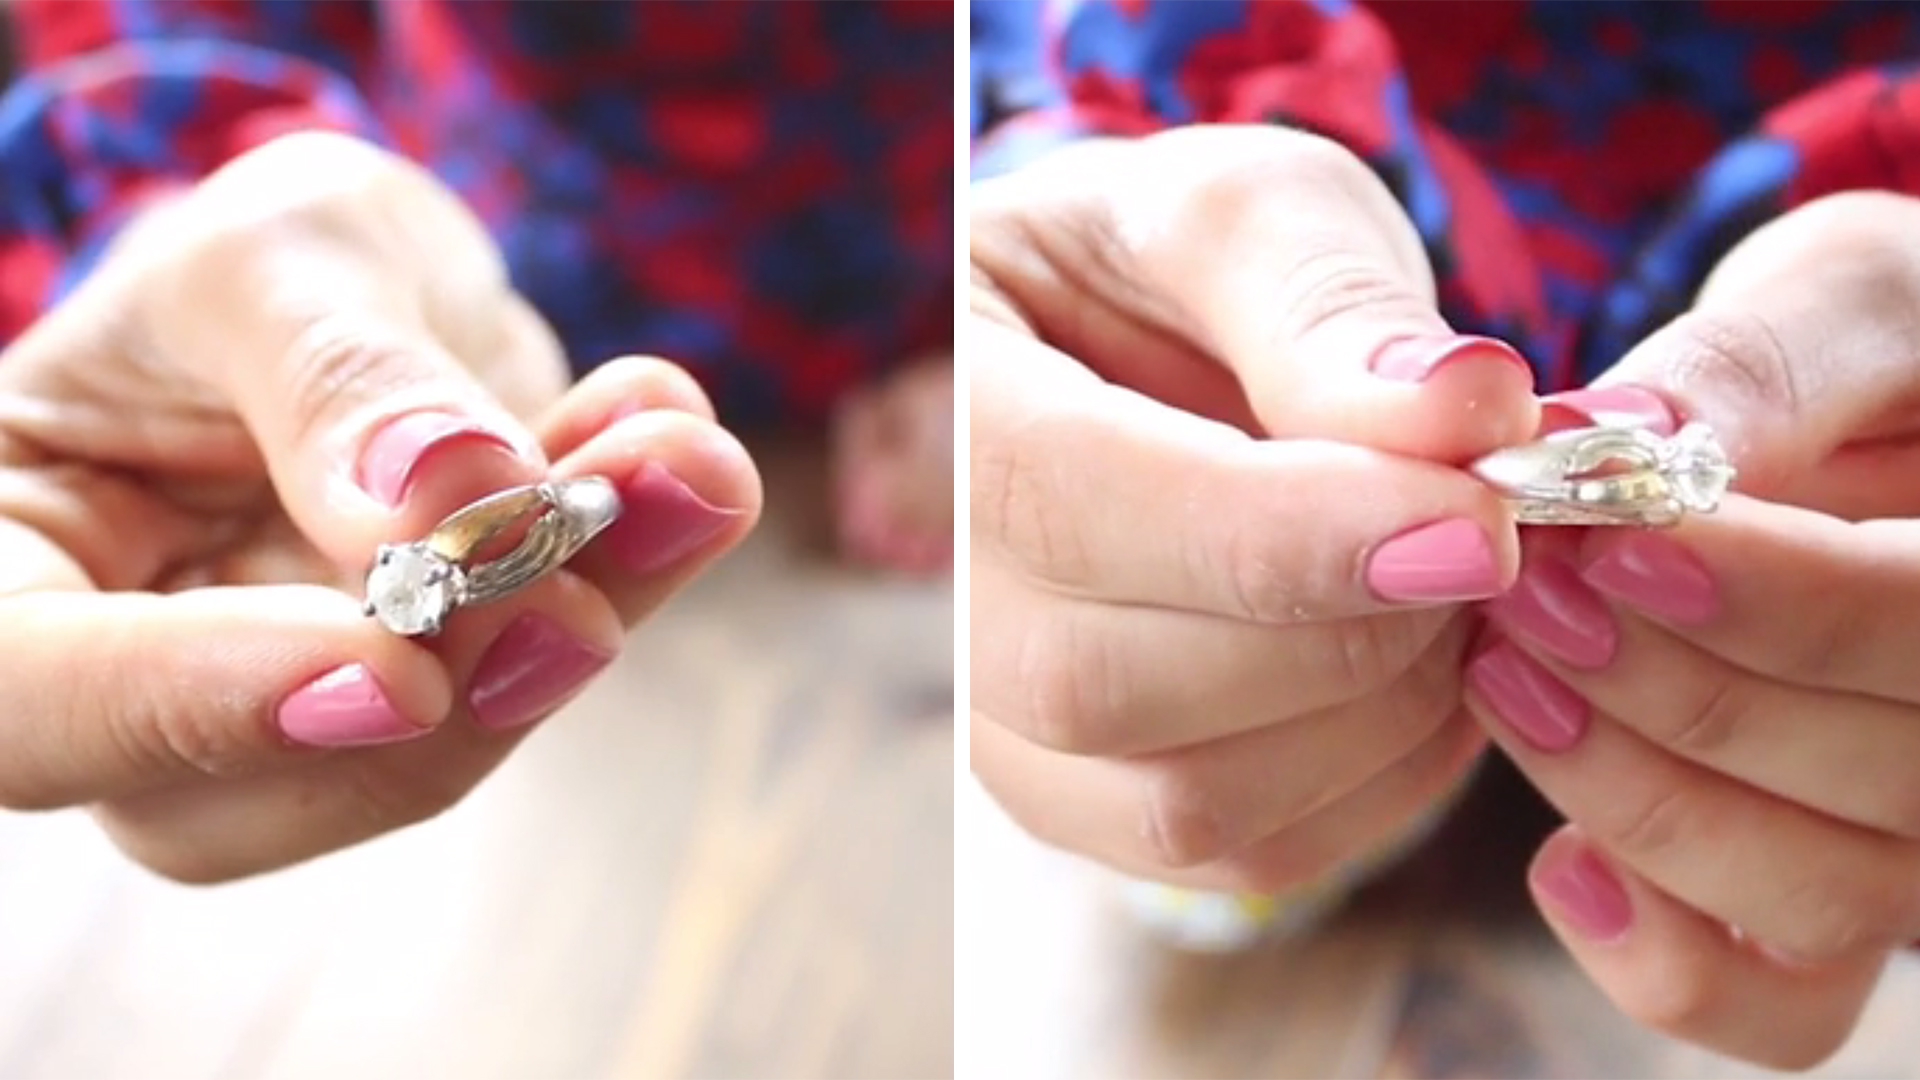 Homemade Jewelry Cleaner: Clean Silver Jewelry With One